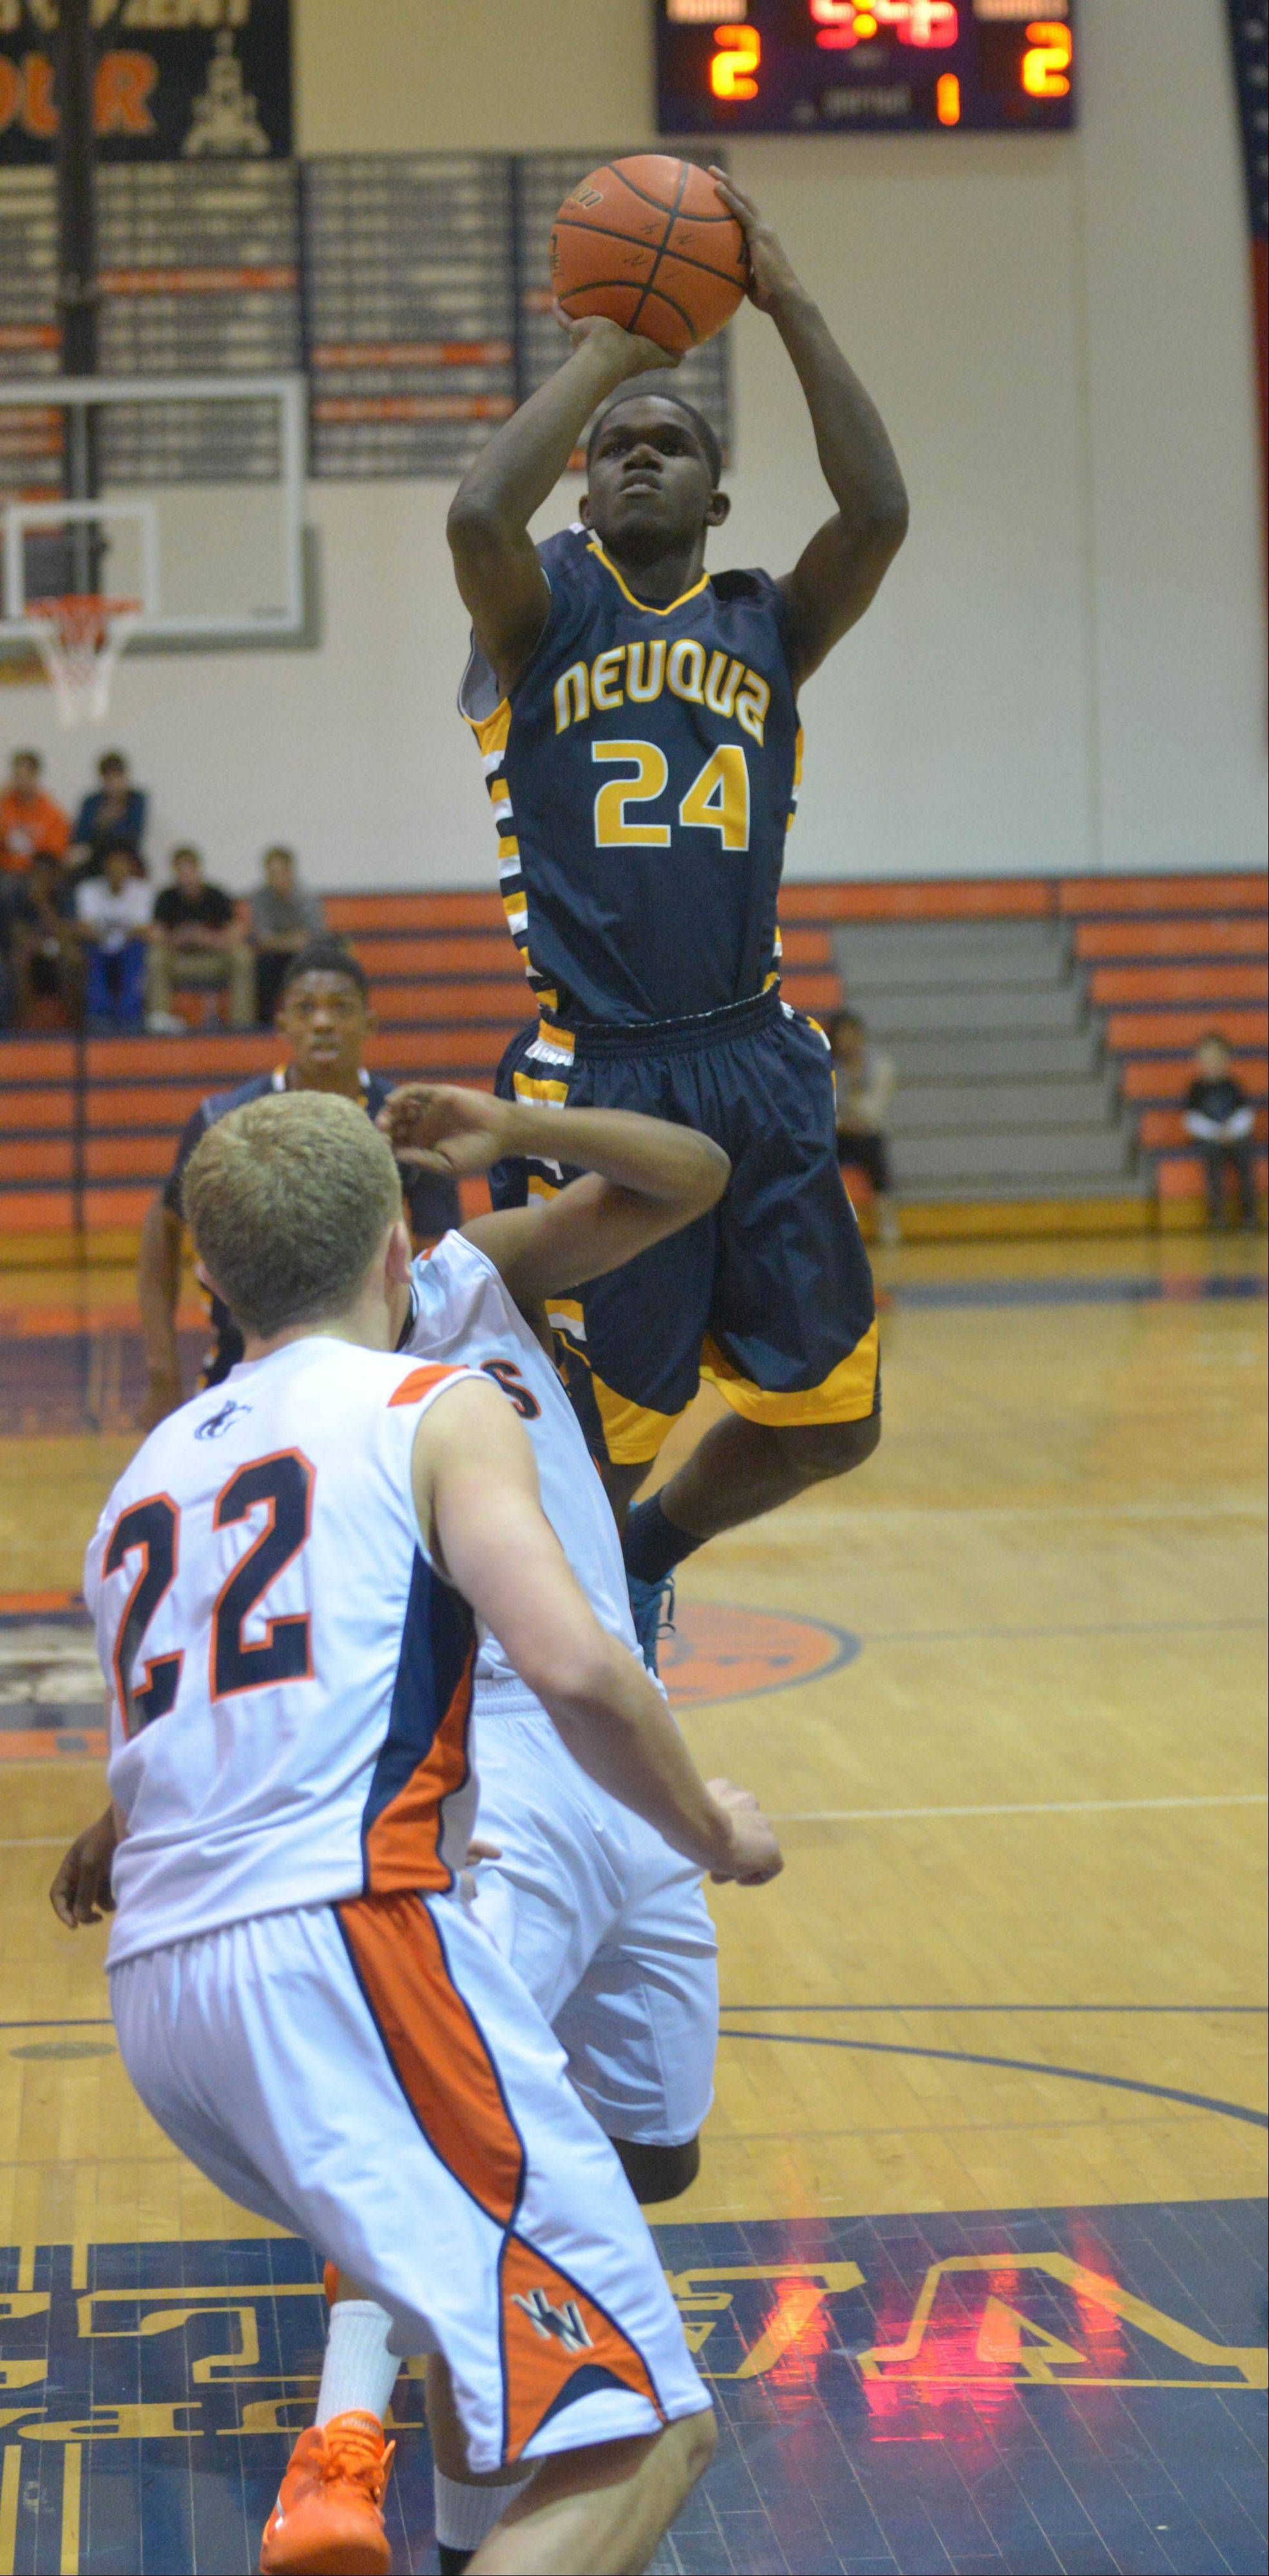 Demond George of Neuqua Valley takes a shot during the Neuqua Valley at Naperville North boys basketball game Tuesday.